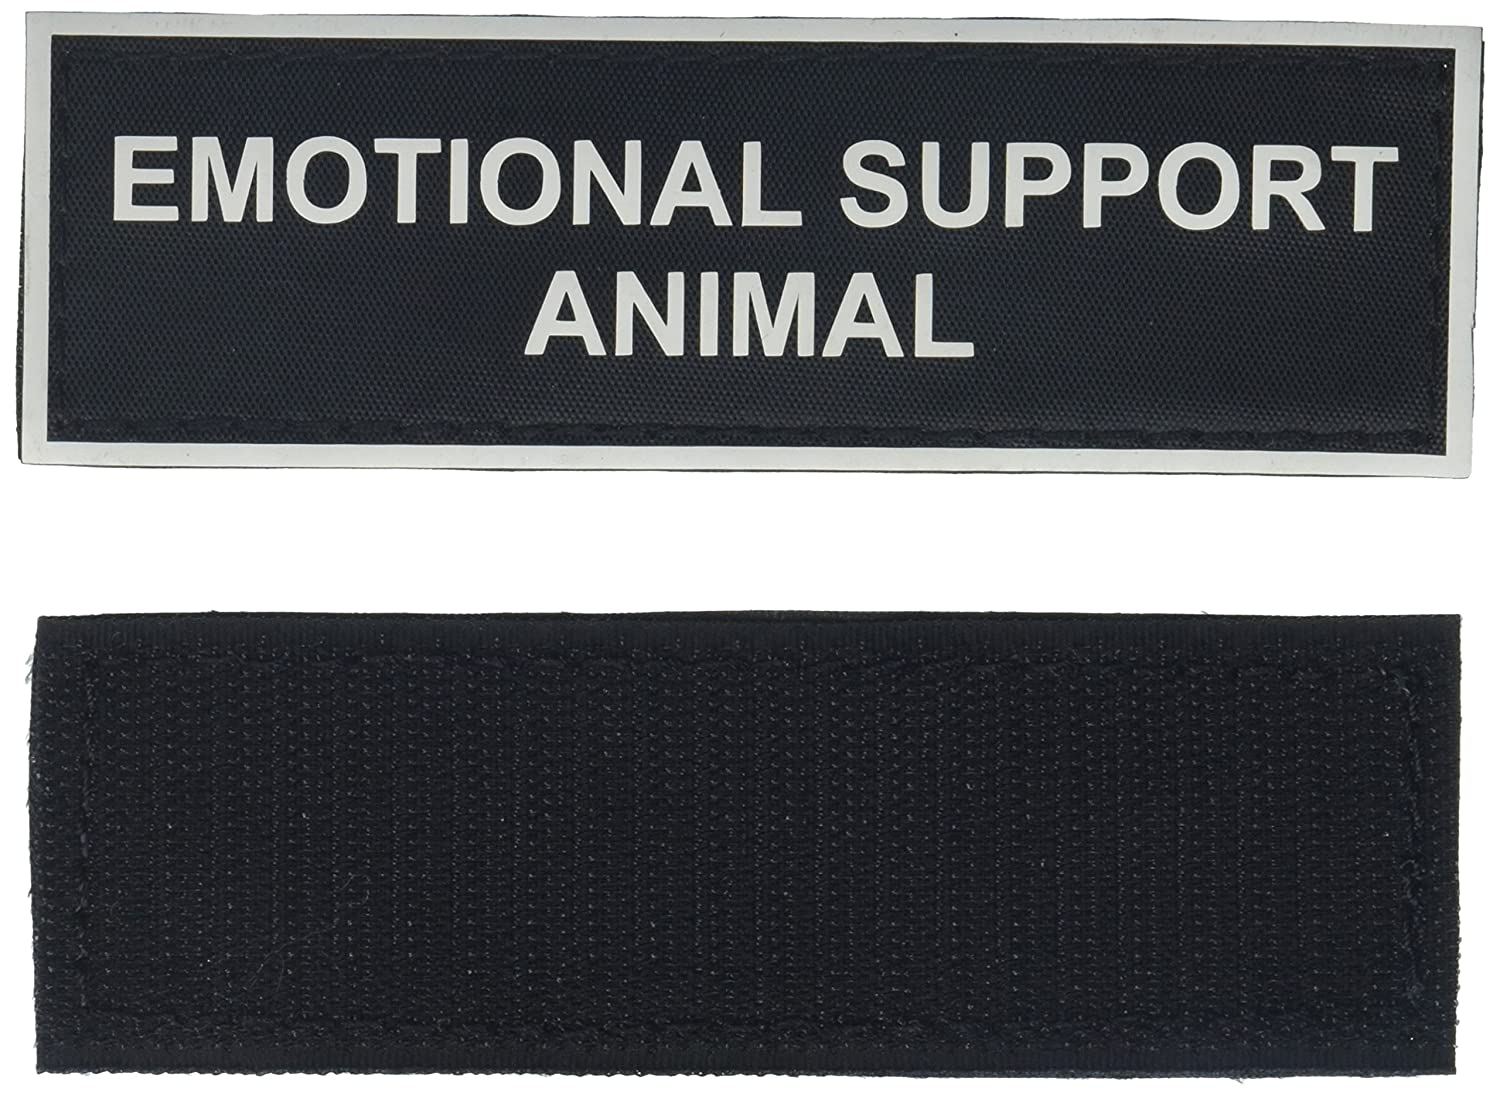 Emotional Support Animal Medium nylon velcro patches by Dean & Tyler.